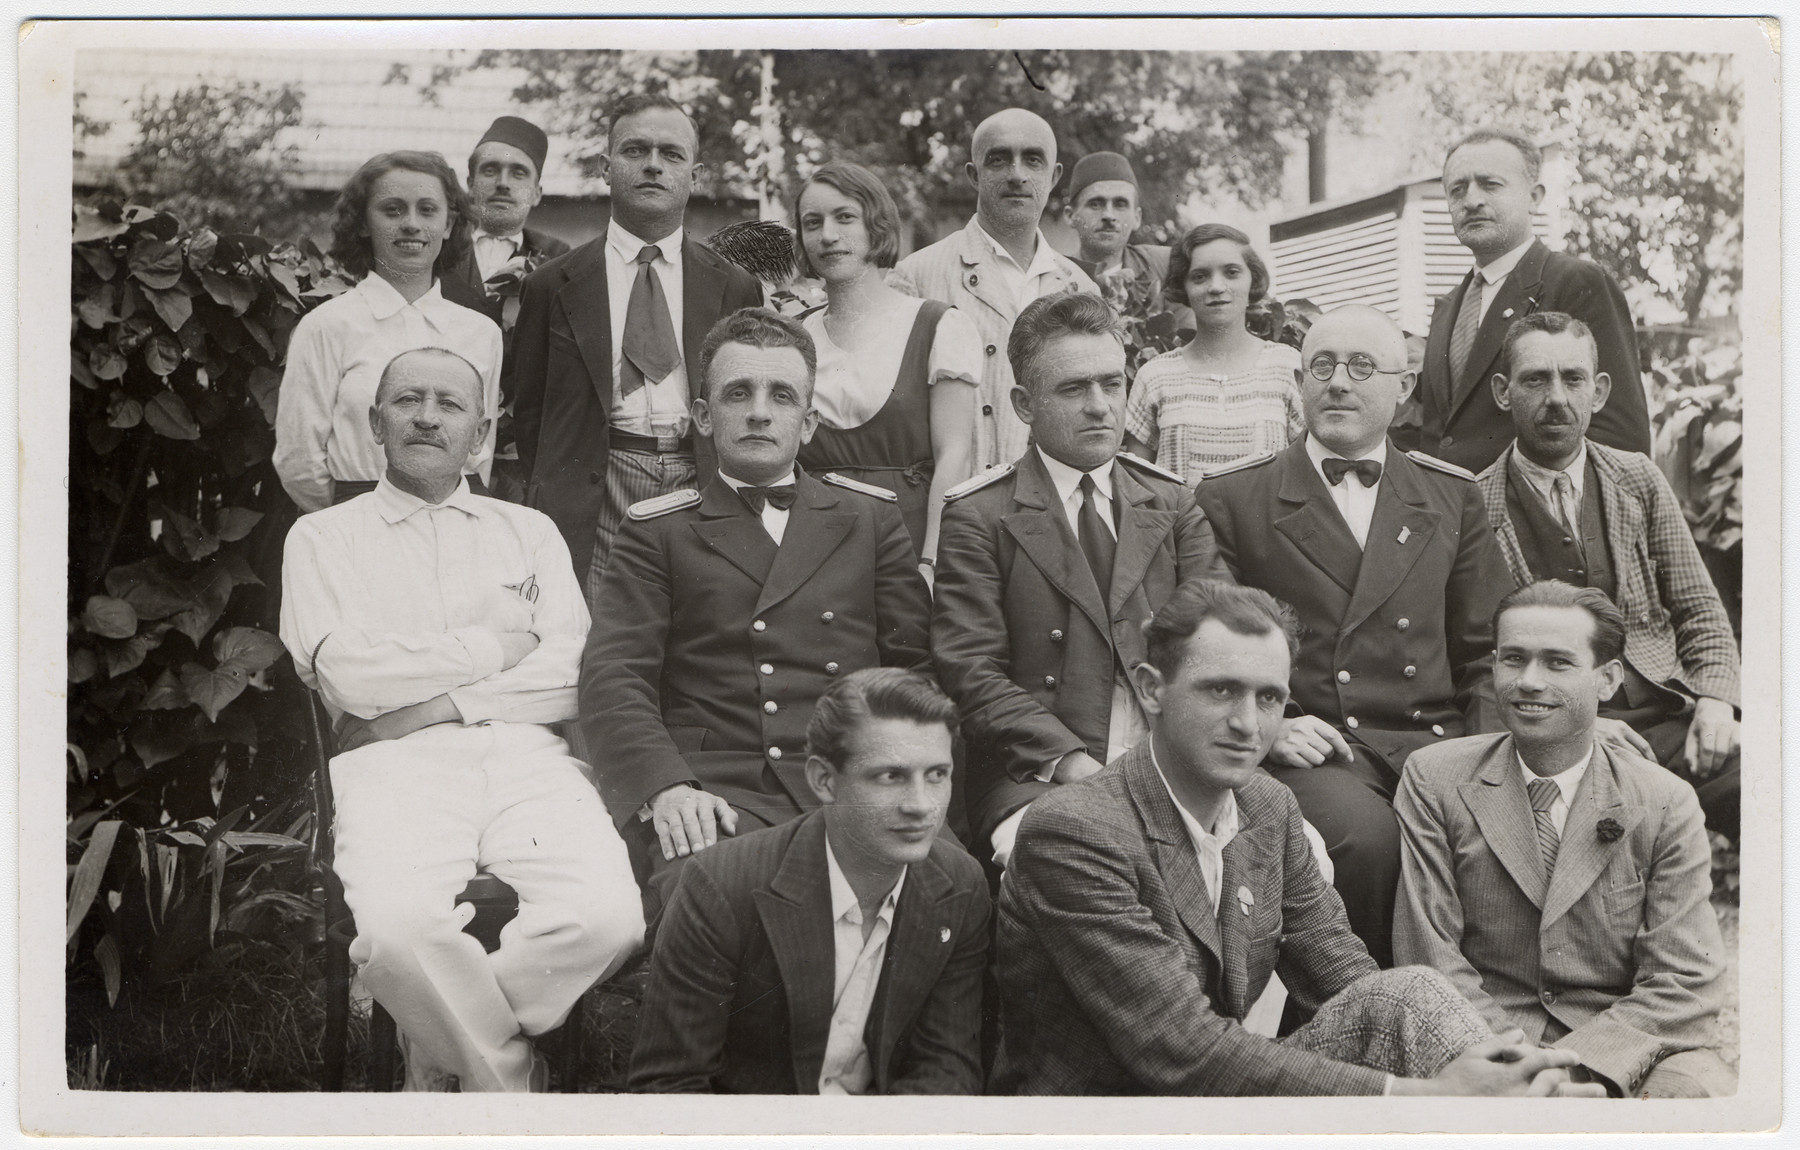 Jevrem Dragojevic (first row, center) poses with other community members in Visegrad, Yugoslavia.